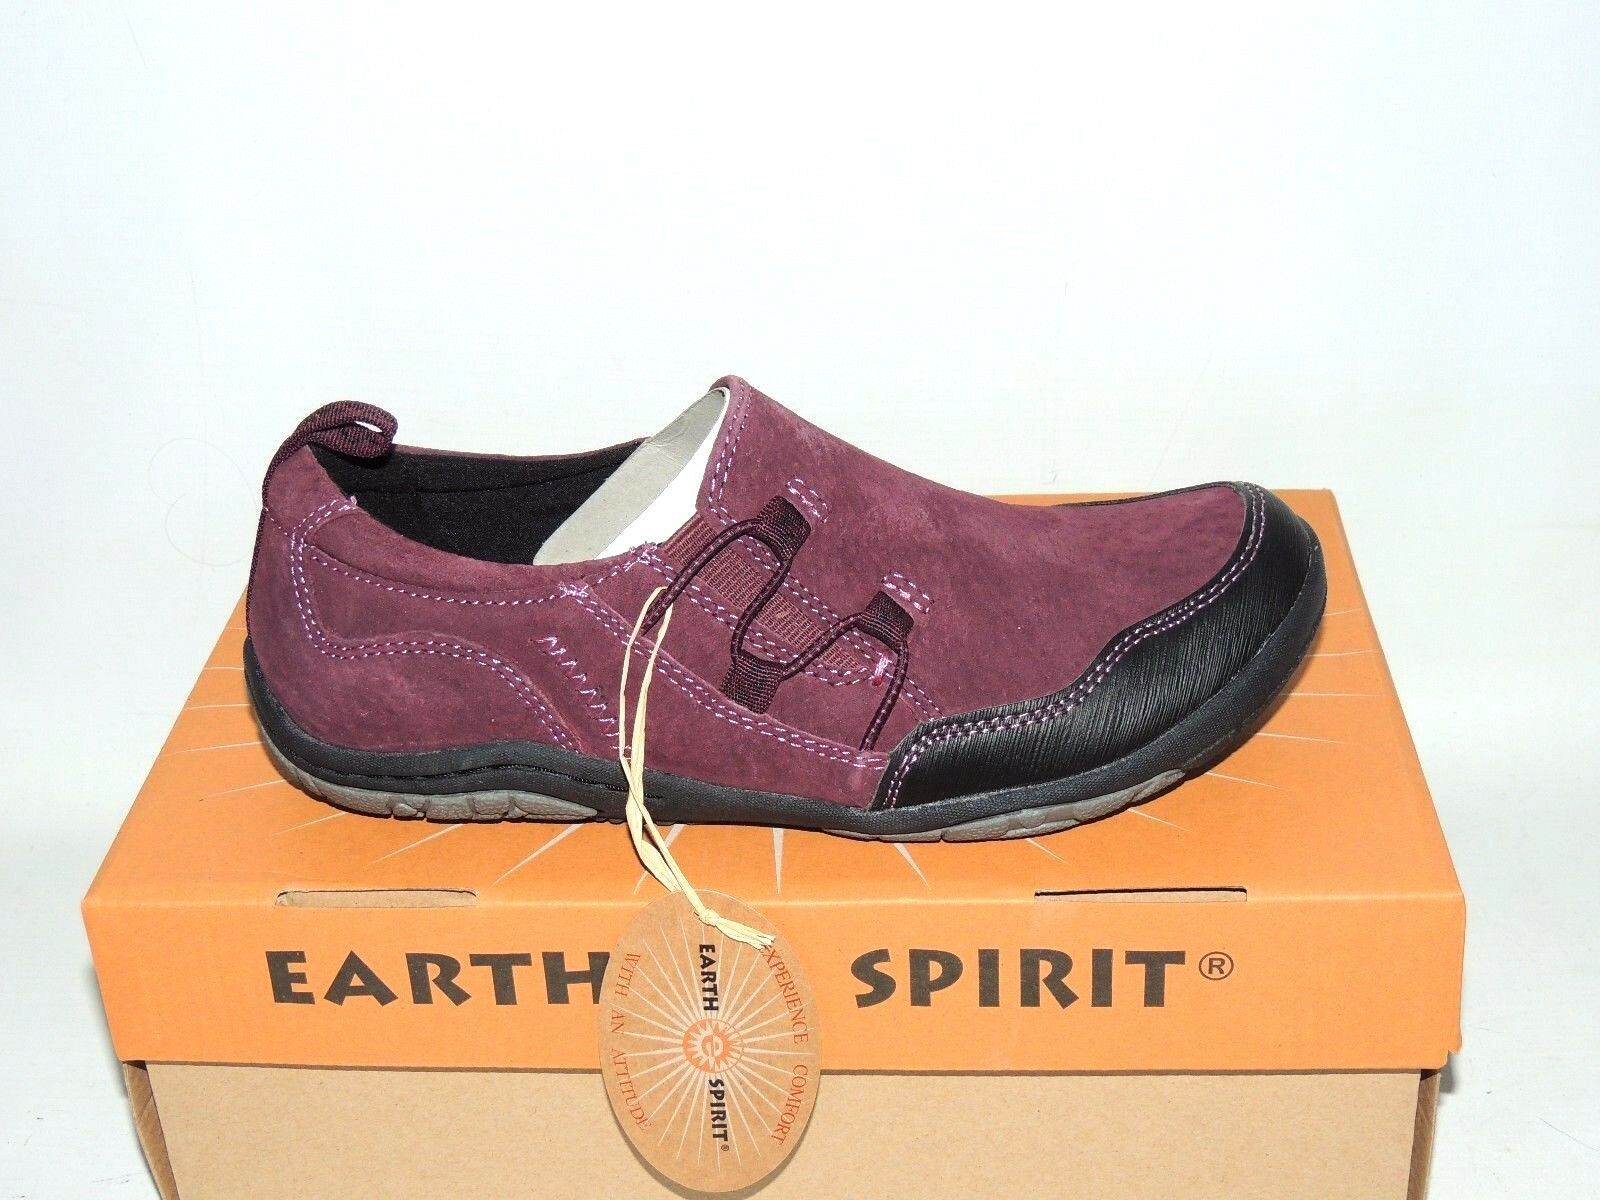 EARTH SPIRIT 'FRENSO' PRUNE SUEDE SLIP ON SHOES TRAINERS. BNIB